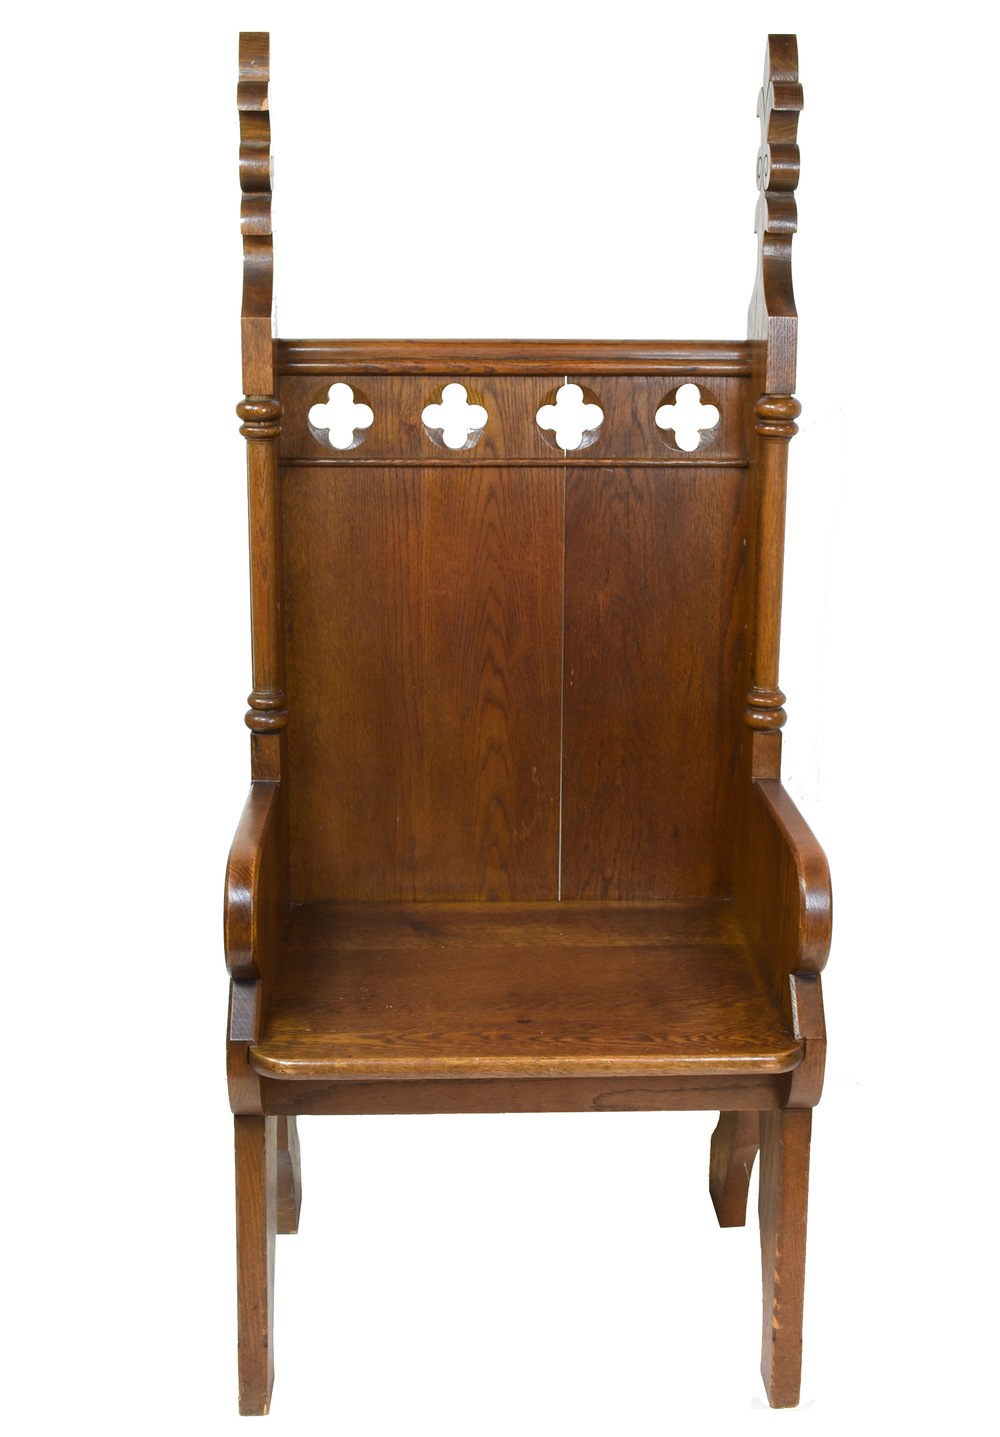 46363-small-clergy-chair-with-carved-lilies-on-side-full-front.jpg